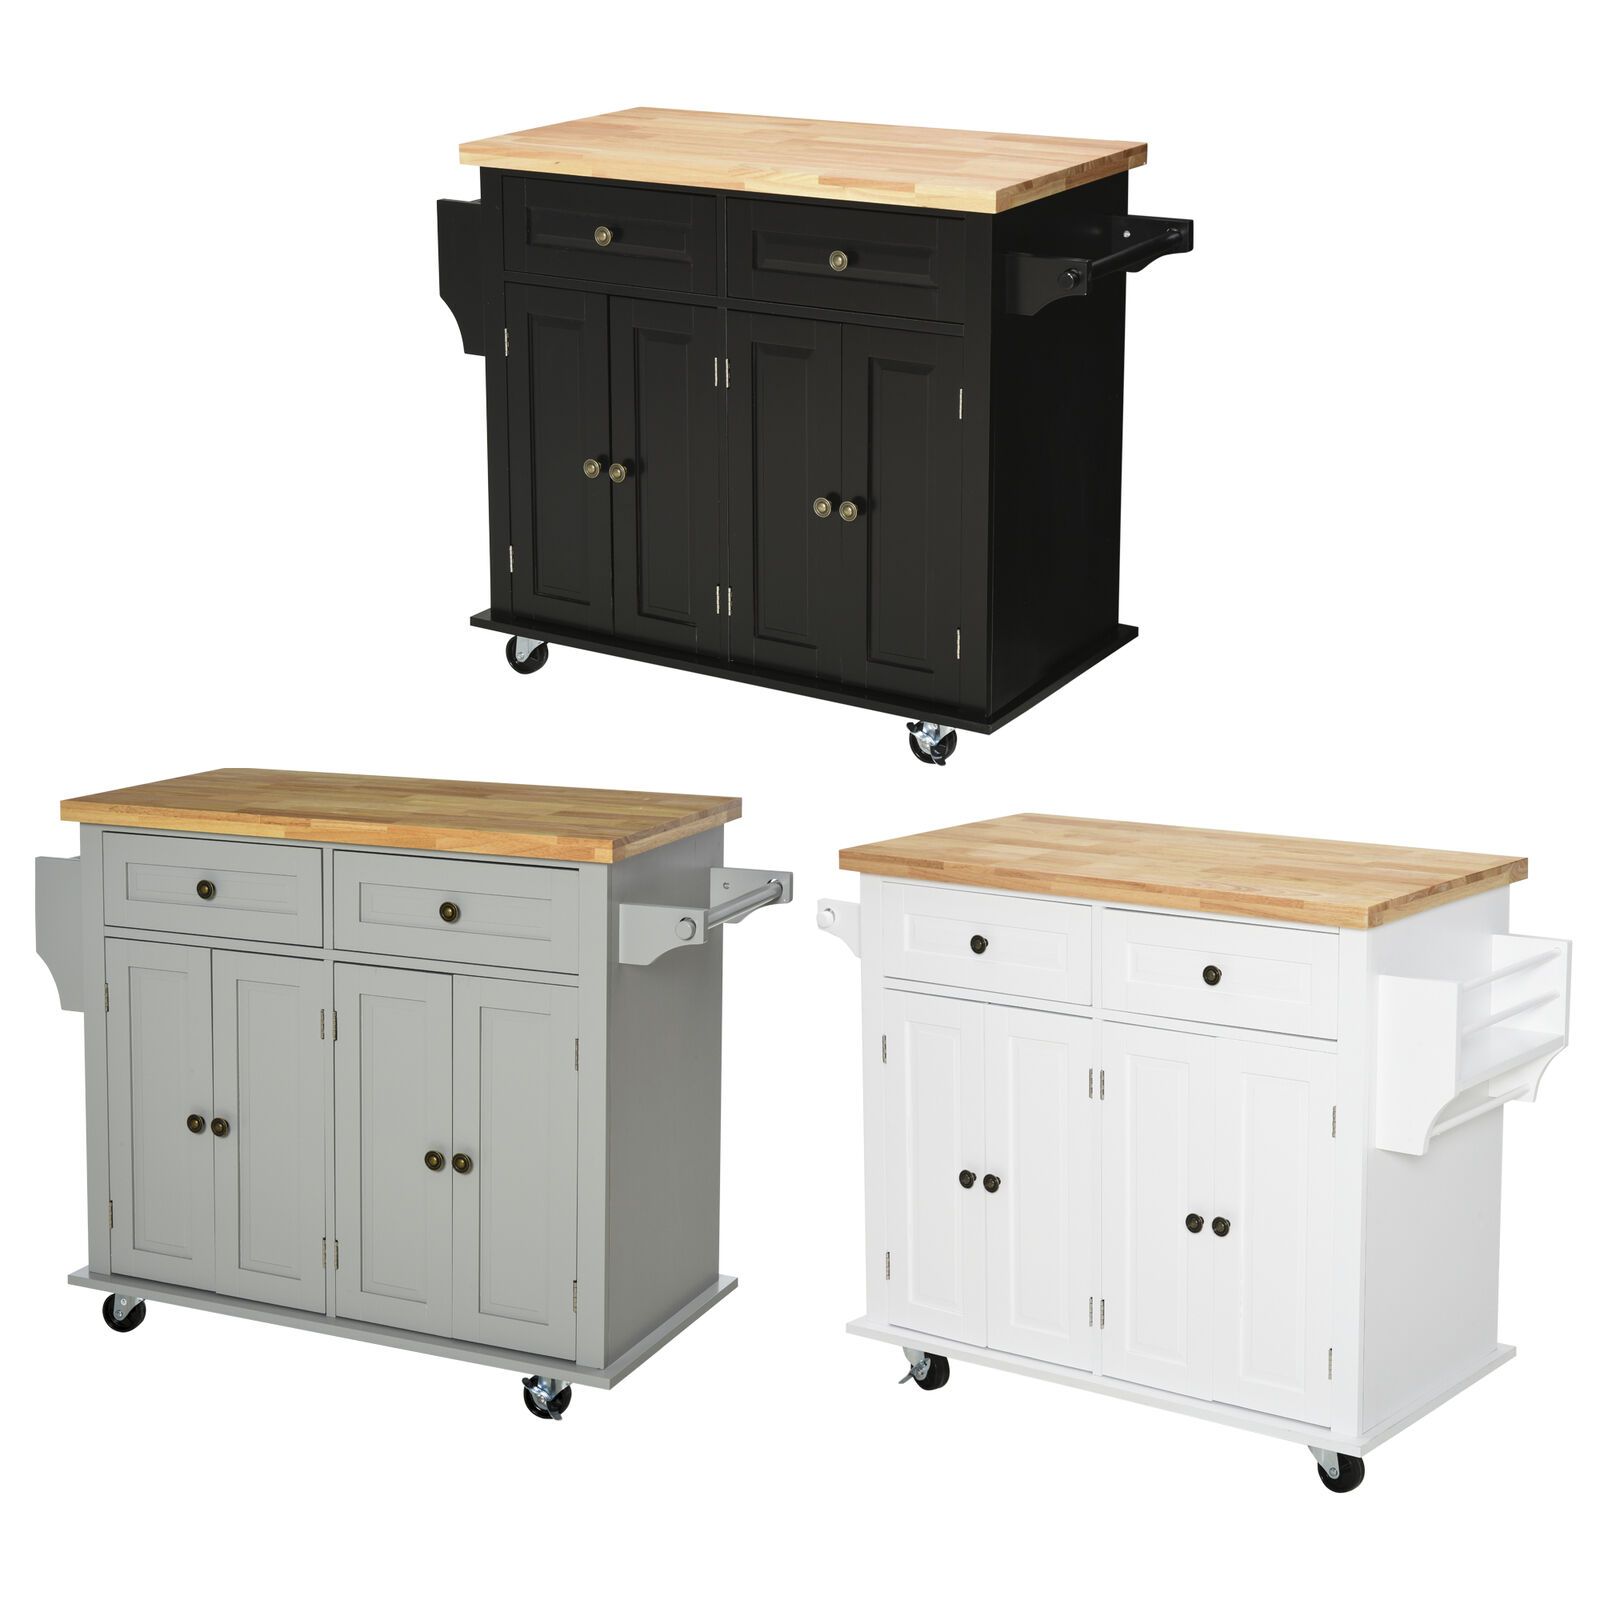 Image of: Wood Portable Kitchen Cart Rolling And Island Storage With Handle In White For Sale Online Ebay